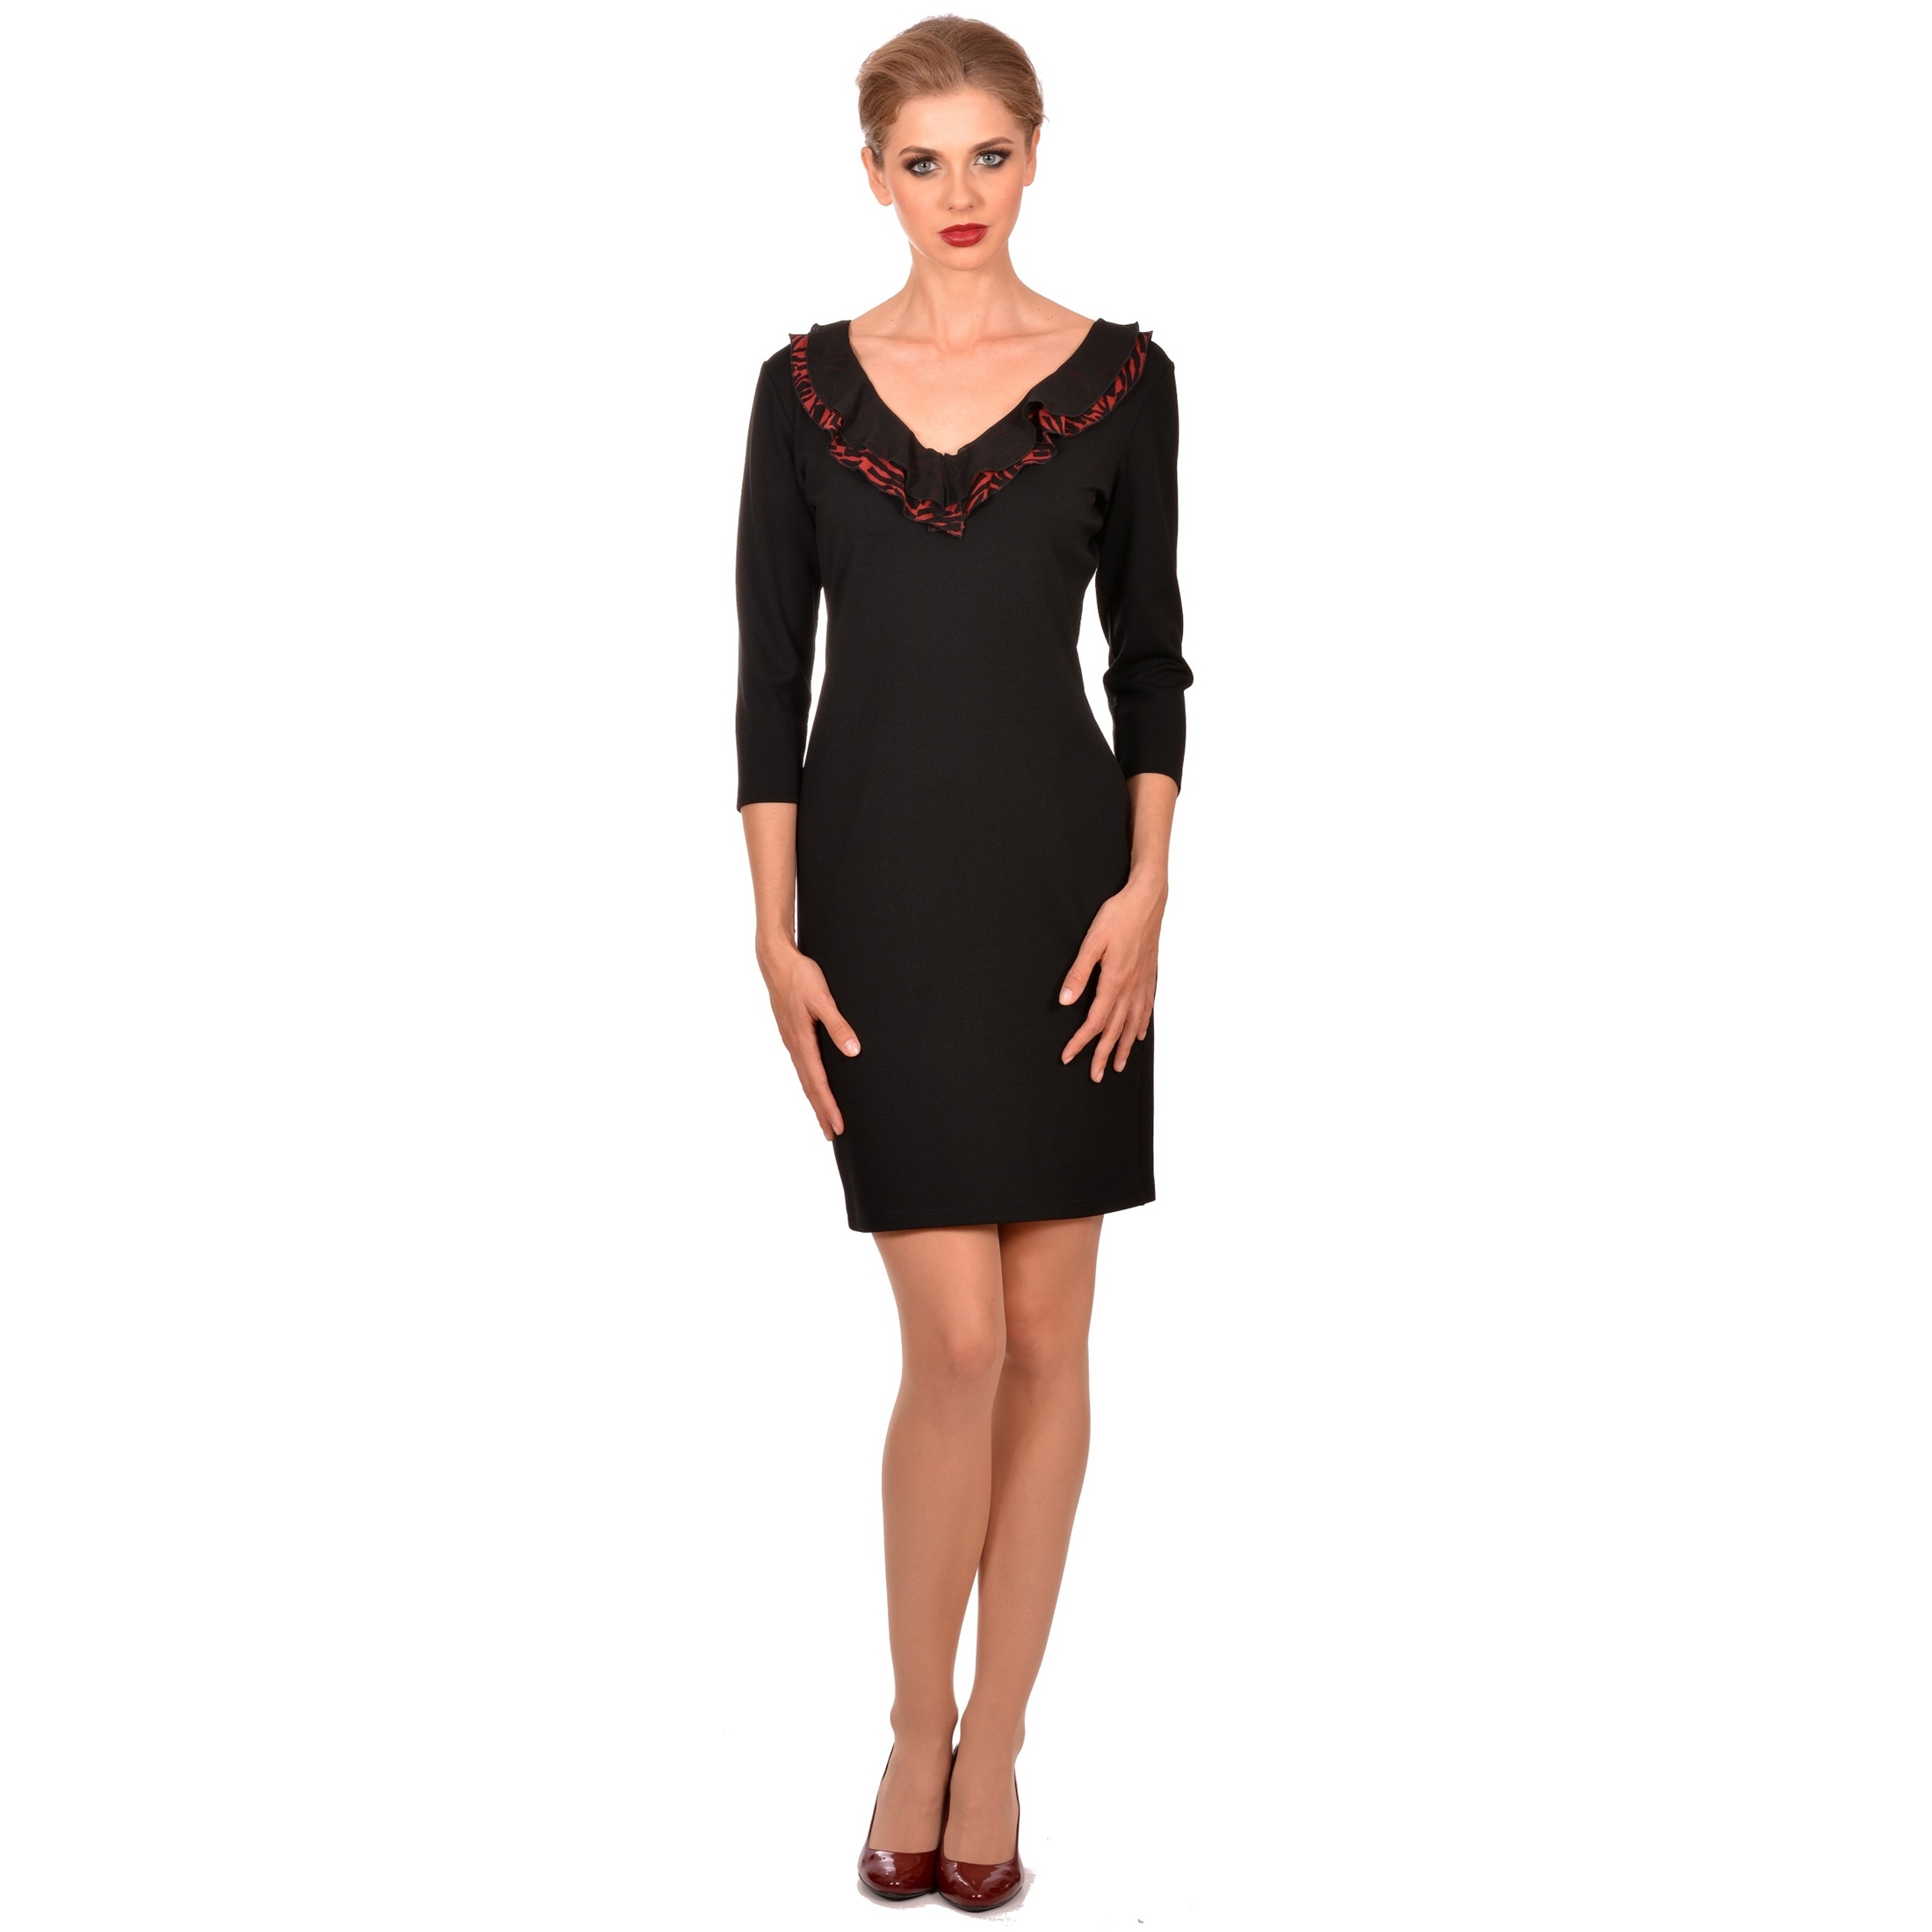 crna ženska haljina lady m,black dress lady m by maria fashion